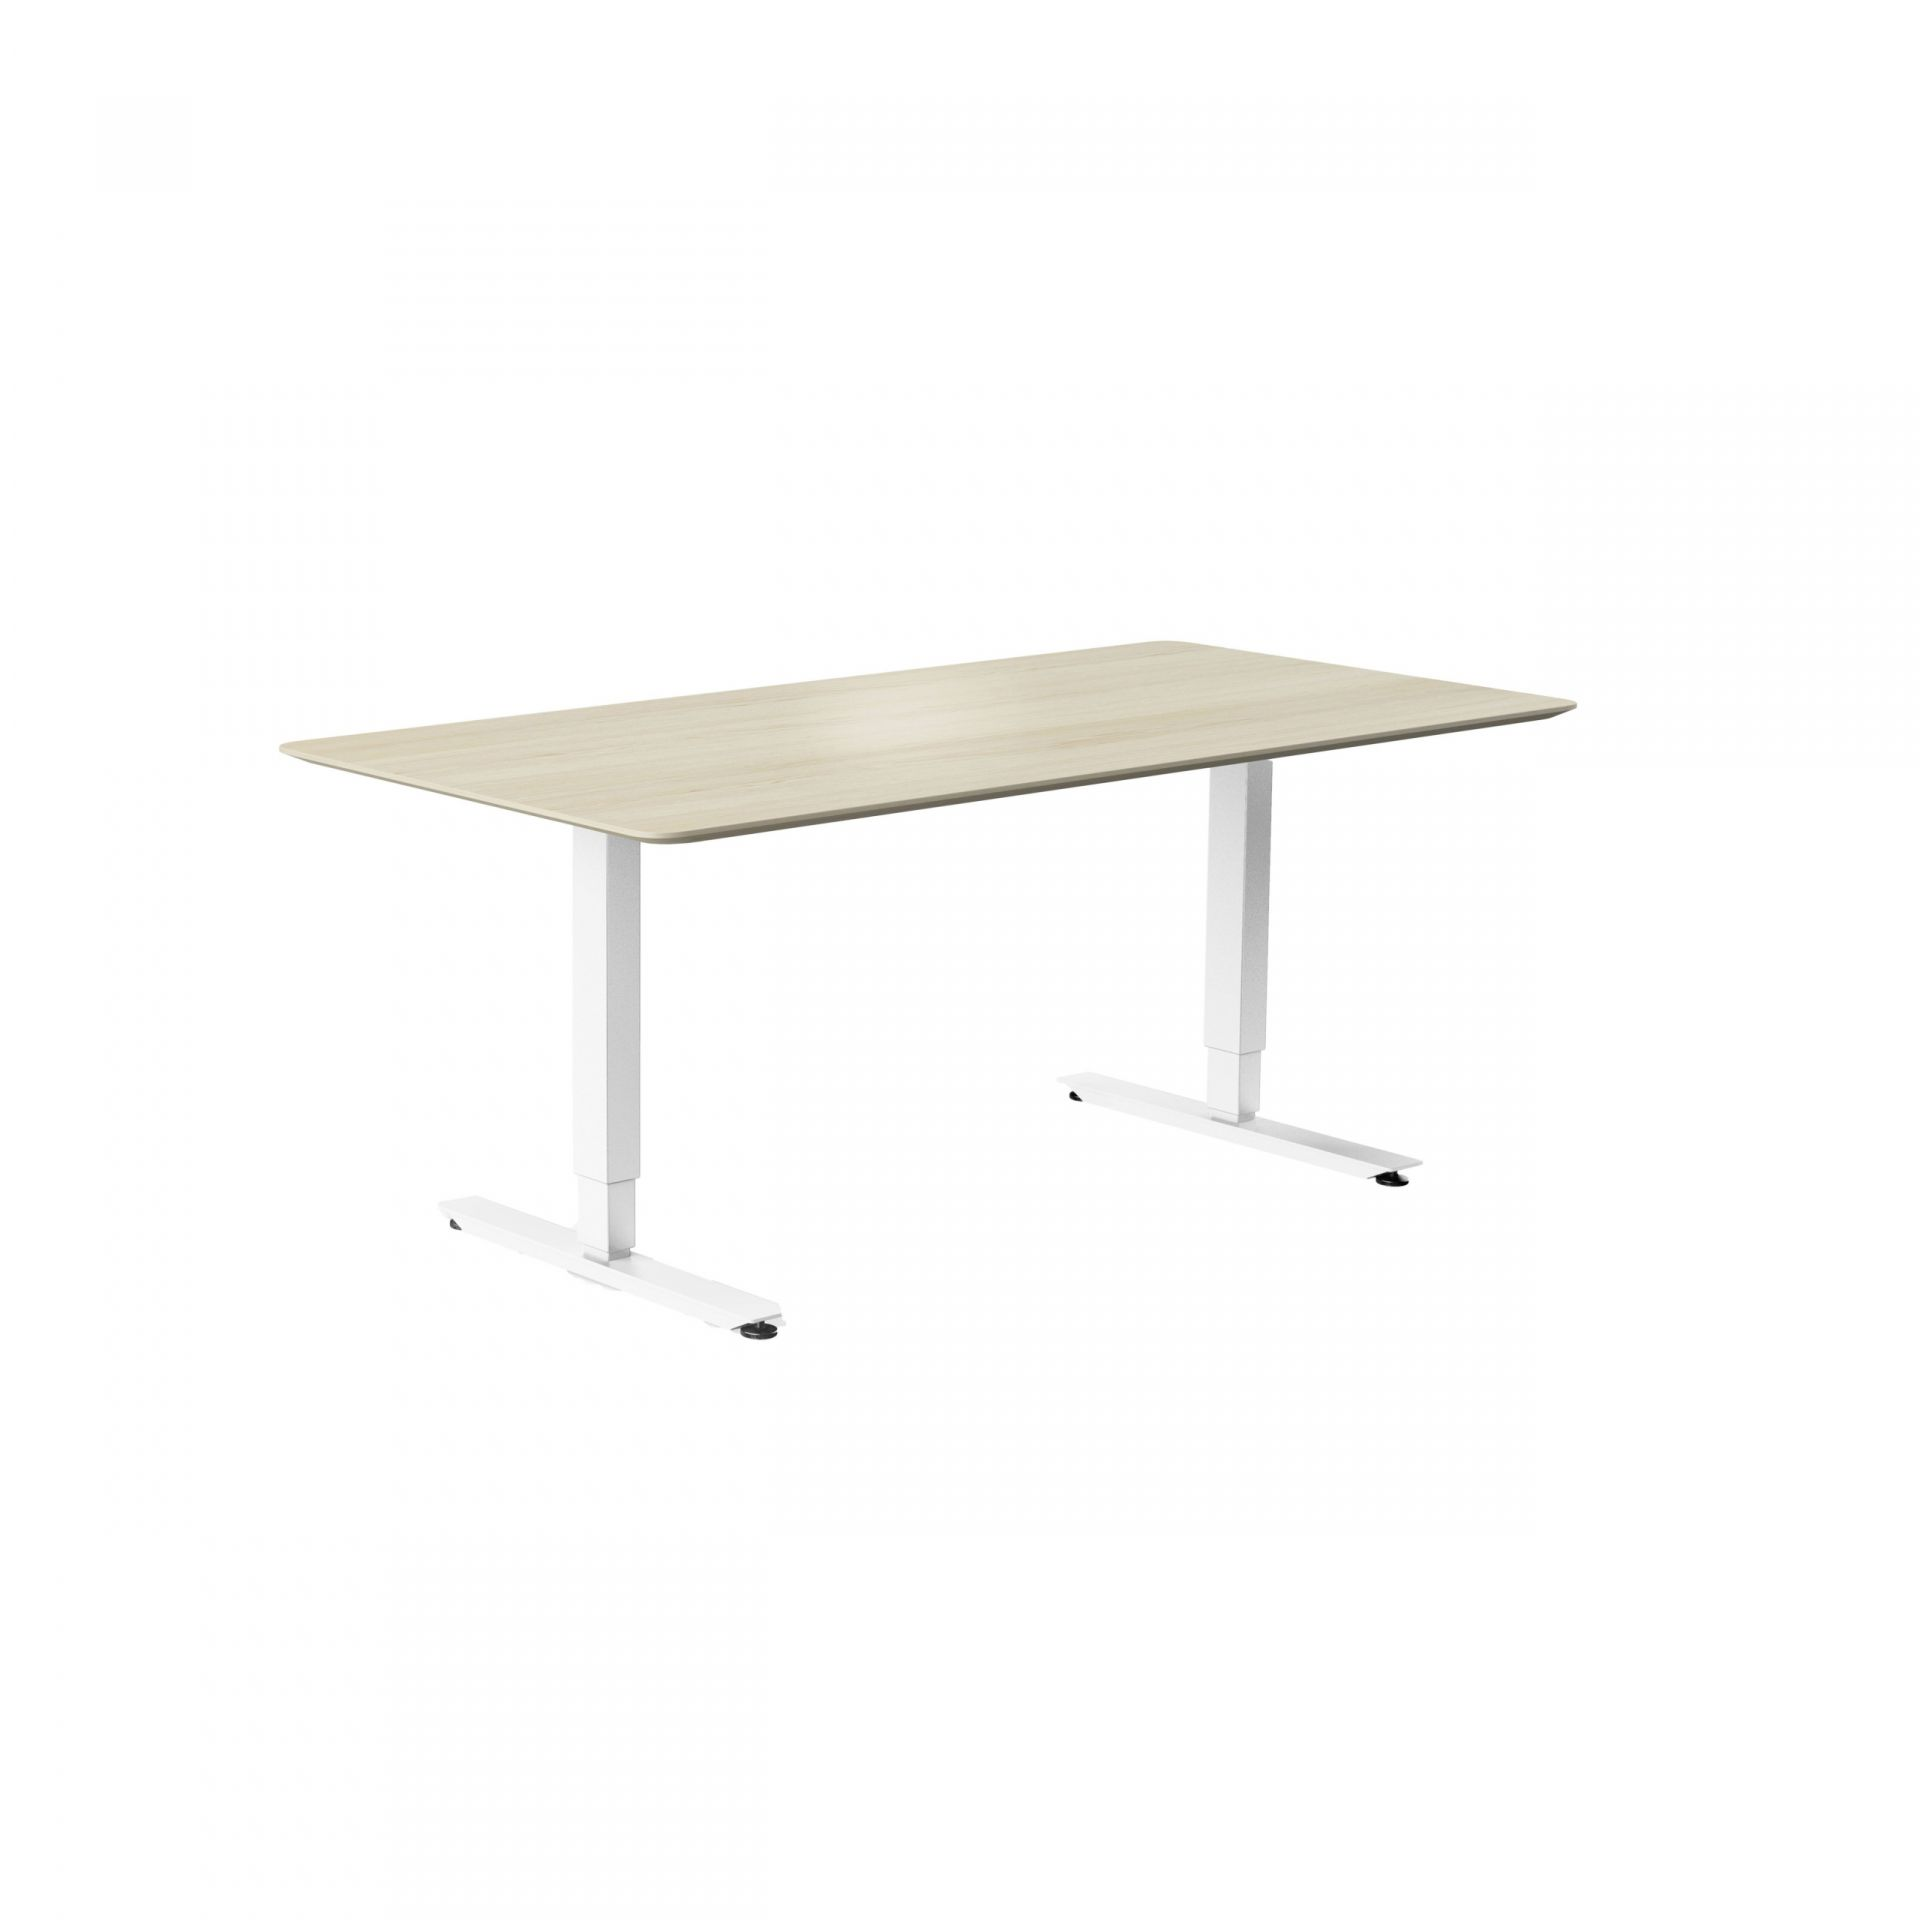 Izi Effect Desk / meeting table